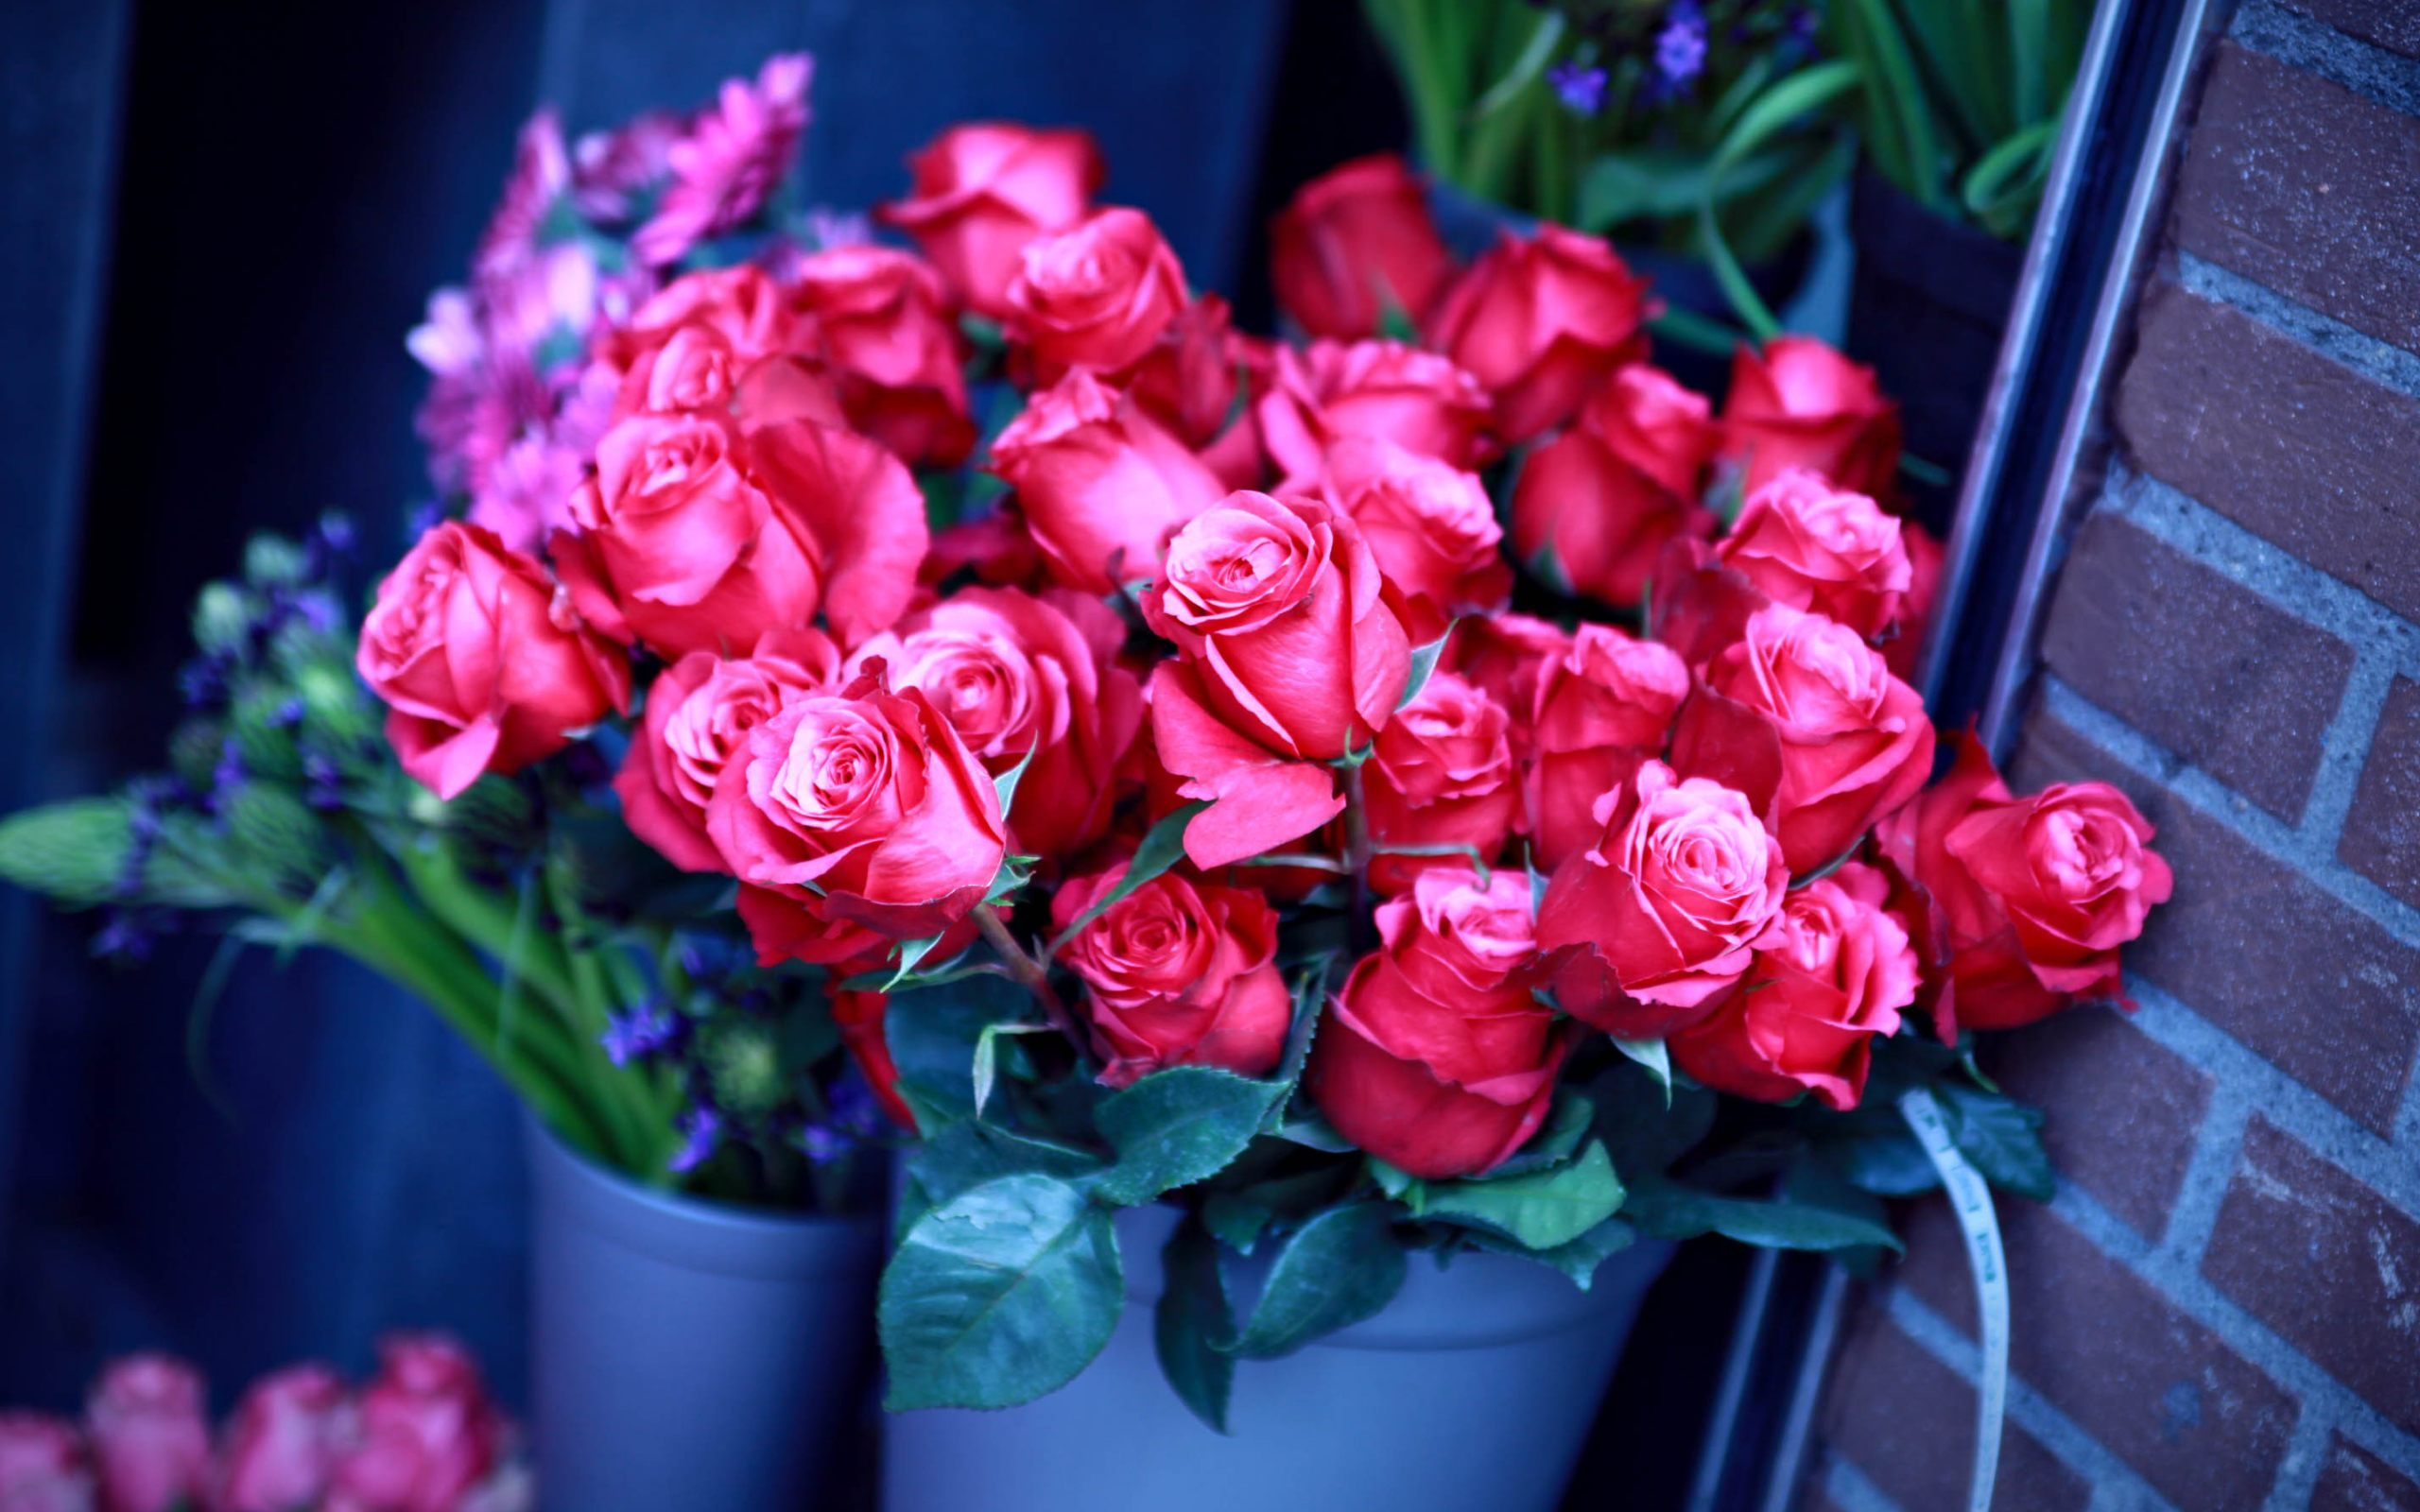 Beautiful Red Roses Basket Wallpaper HD Download For Desktop